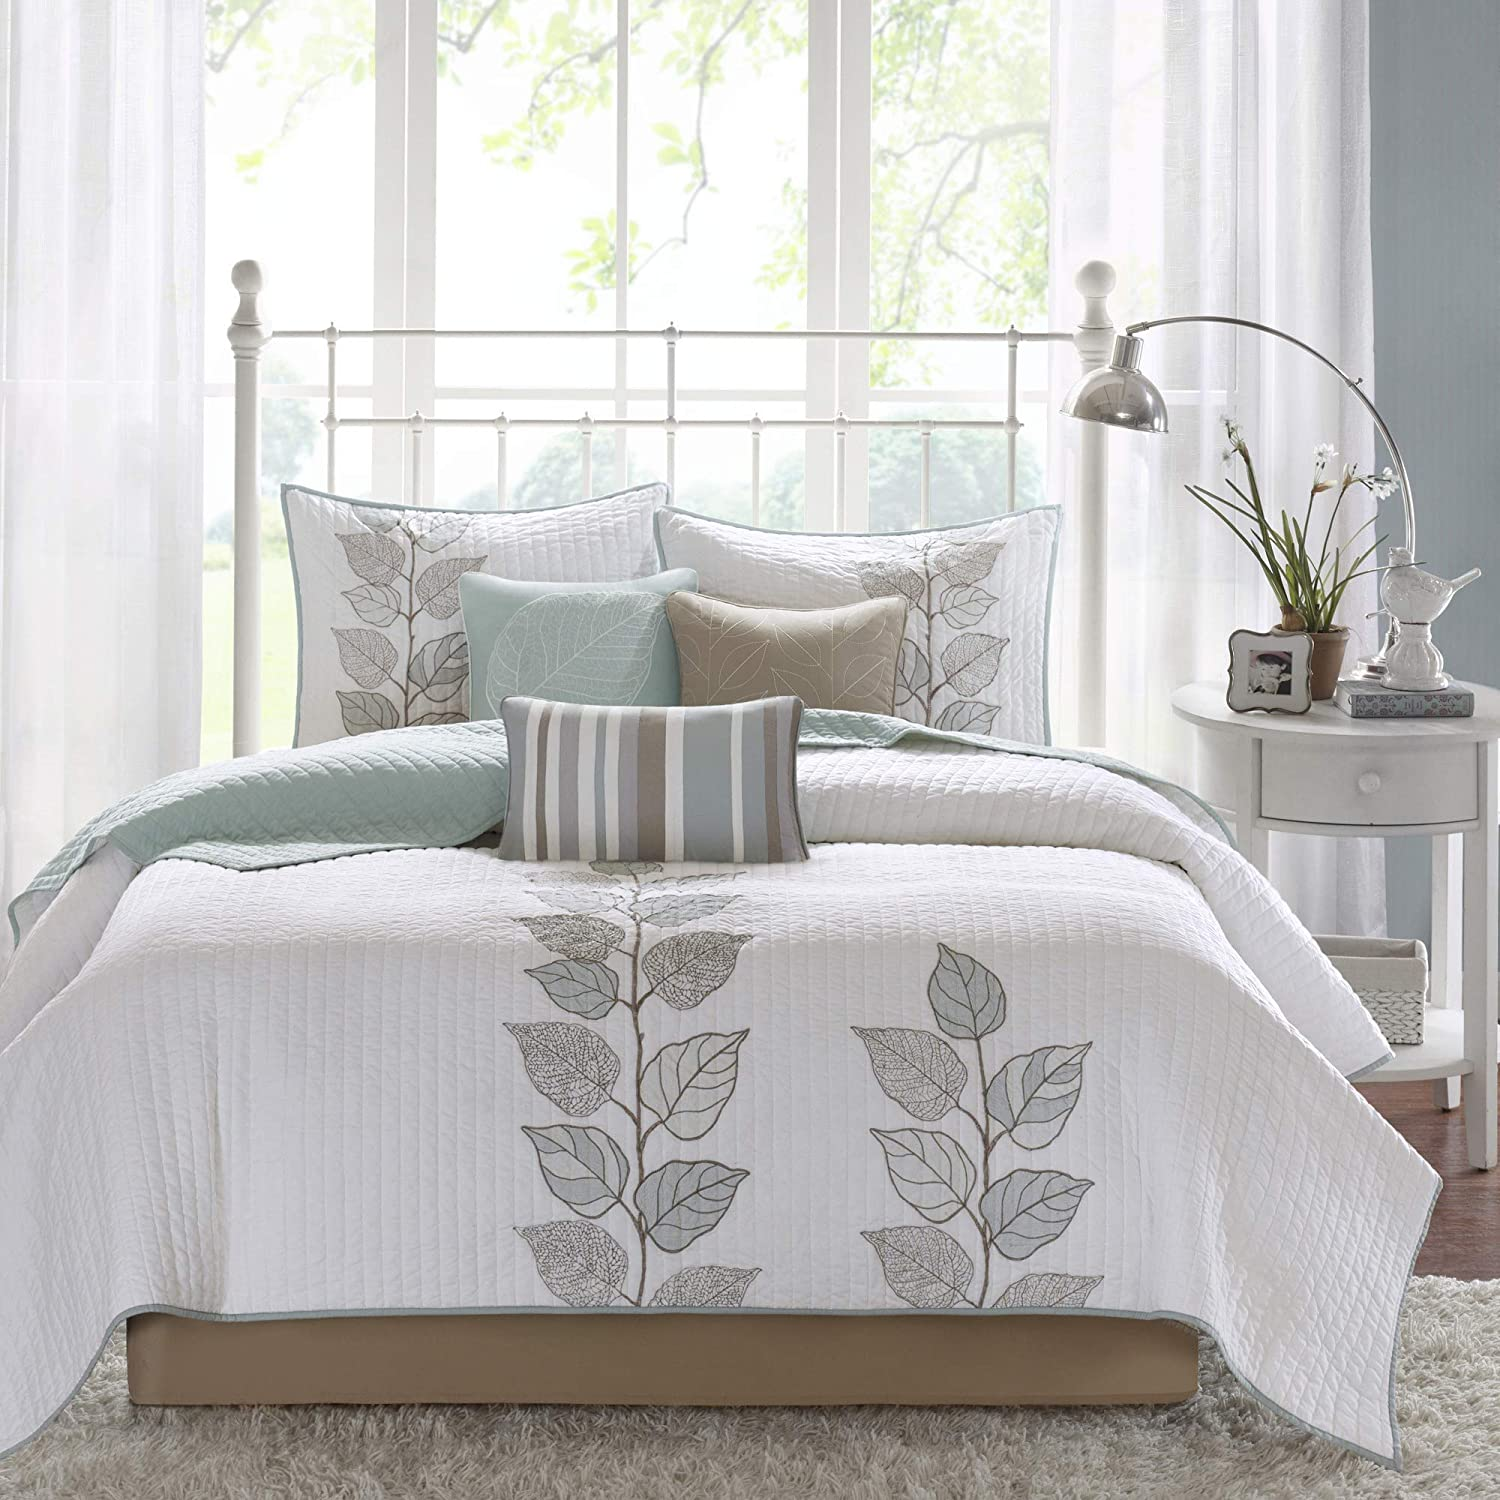 Madison Park Caelie 6 Piece Quilted Coverlet Set, King, Blue